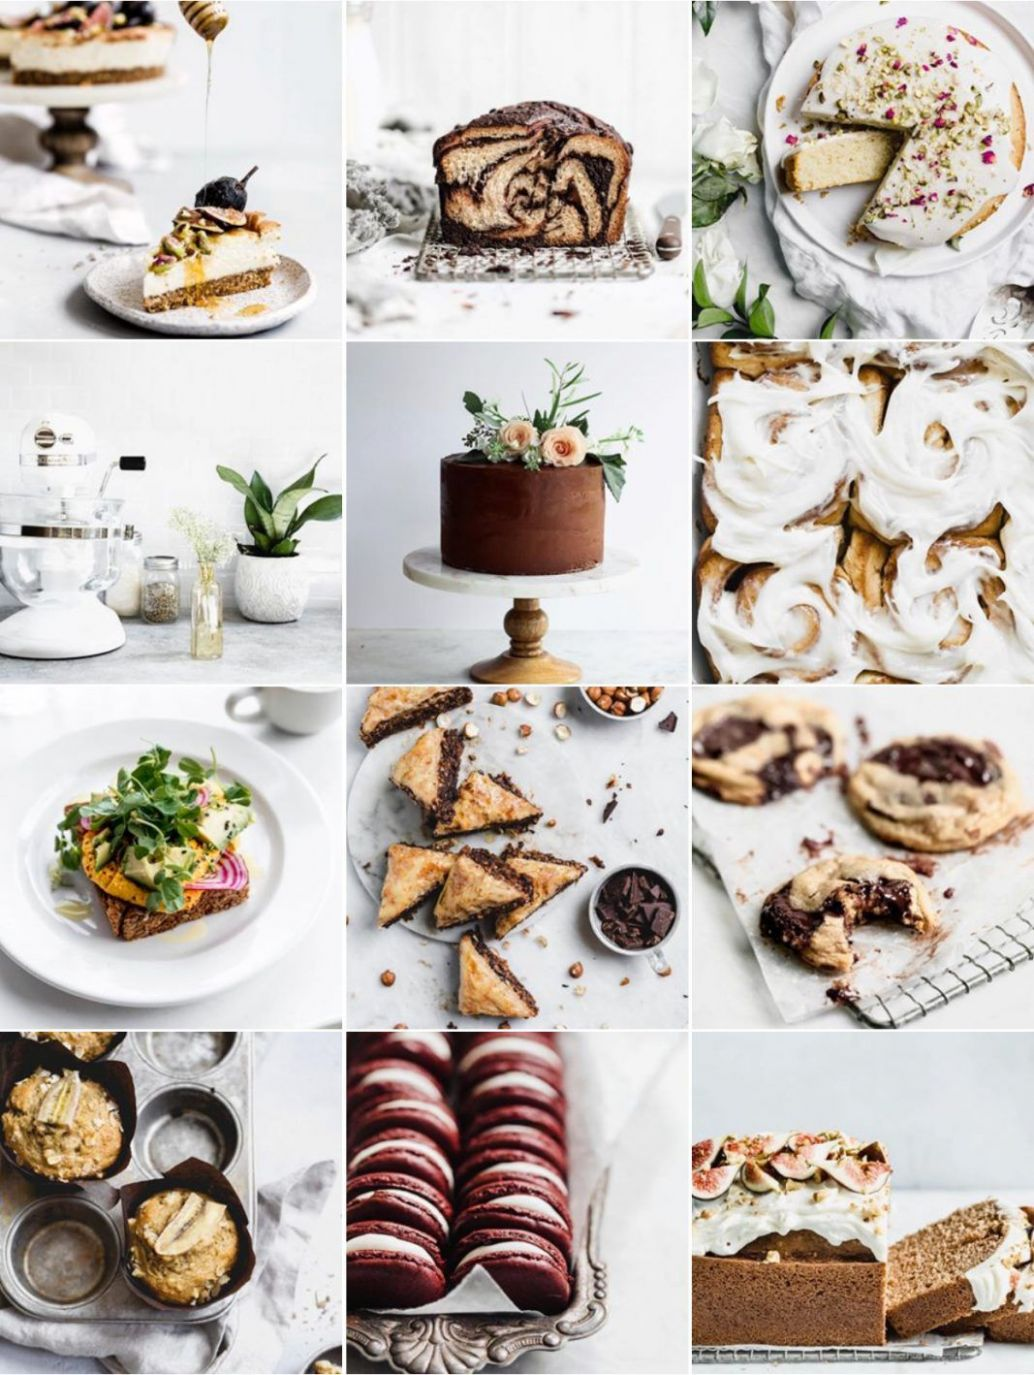 11 Ways to Curate the Perfect Food Instagram Feed - Broma Bakery ...